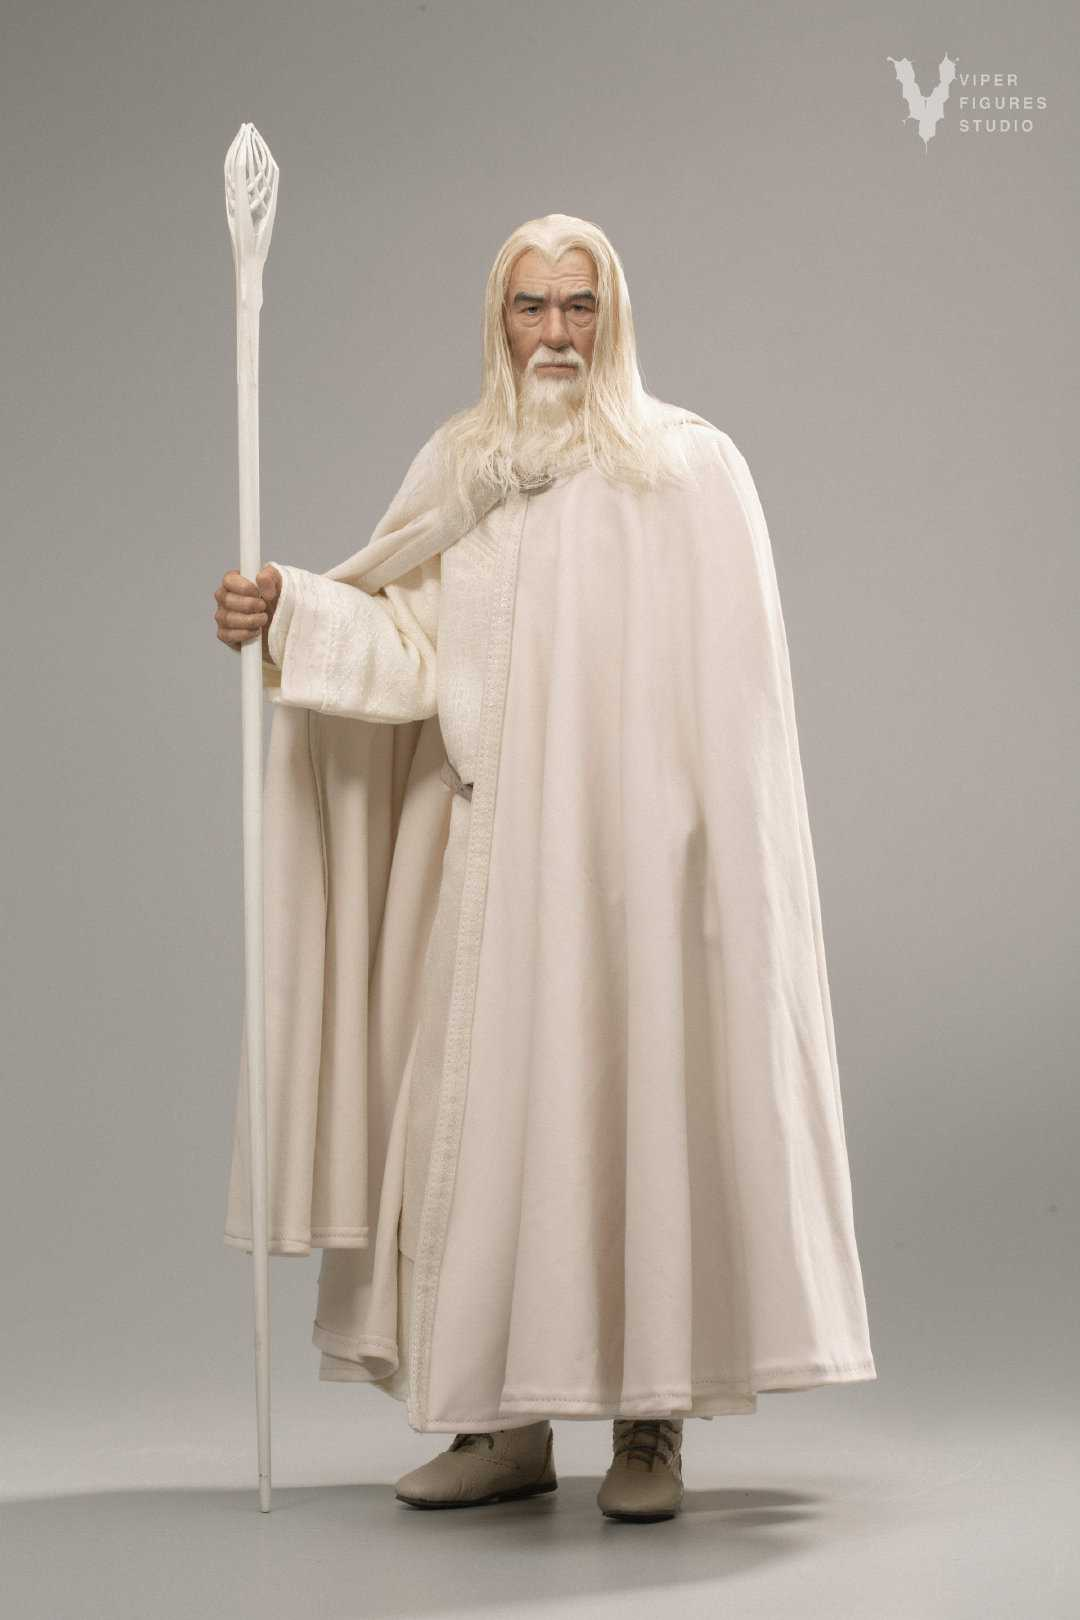 Viper Studio The Lord of the Rings Gandalf the White 1/6 Scale Figure